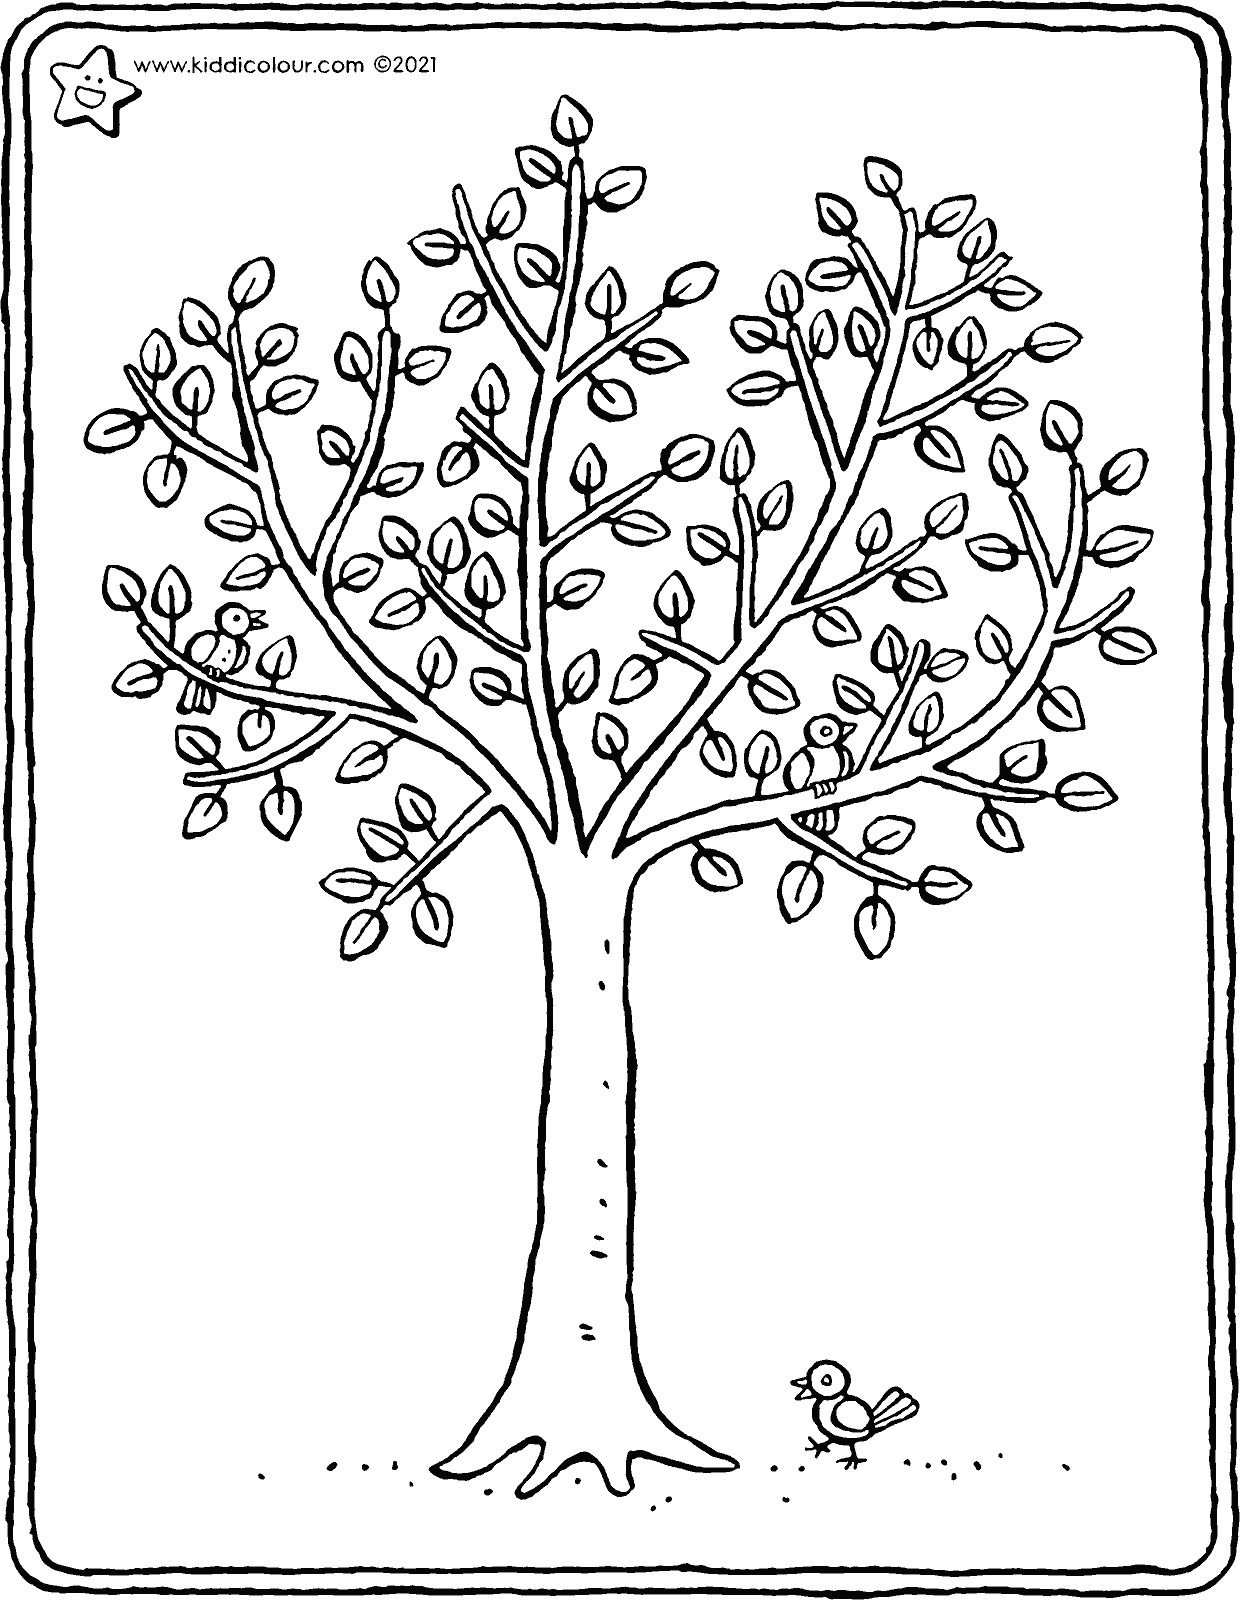 a tree in spring colouring page drawing picture 01V